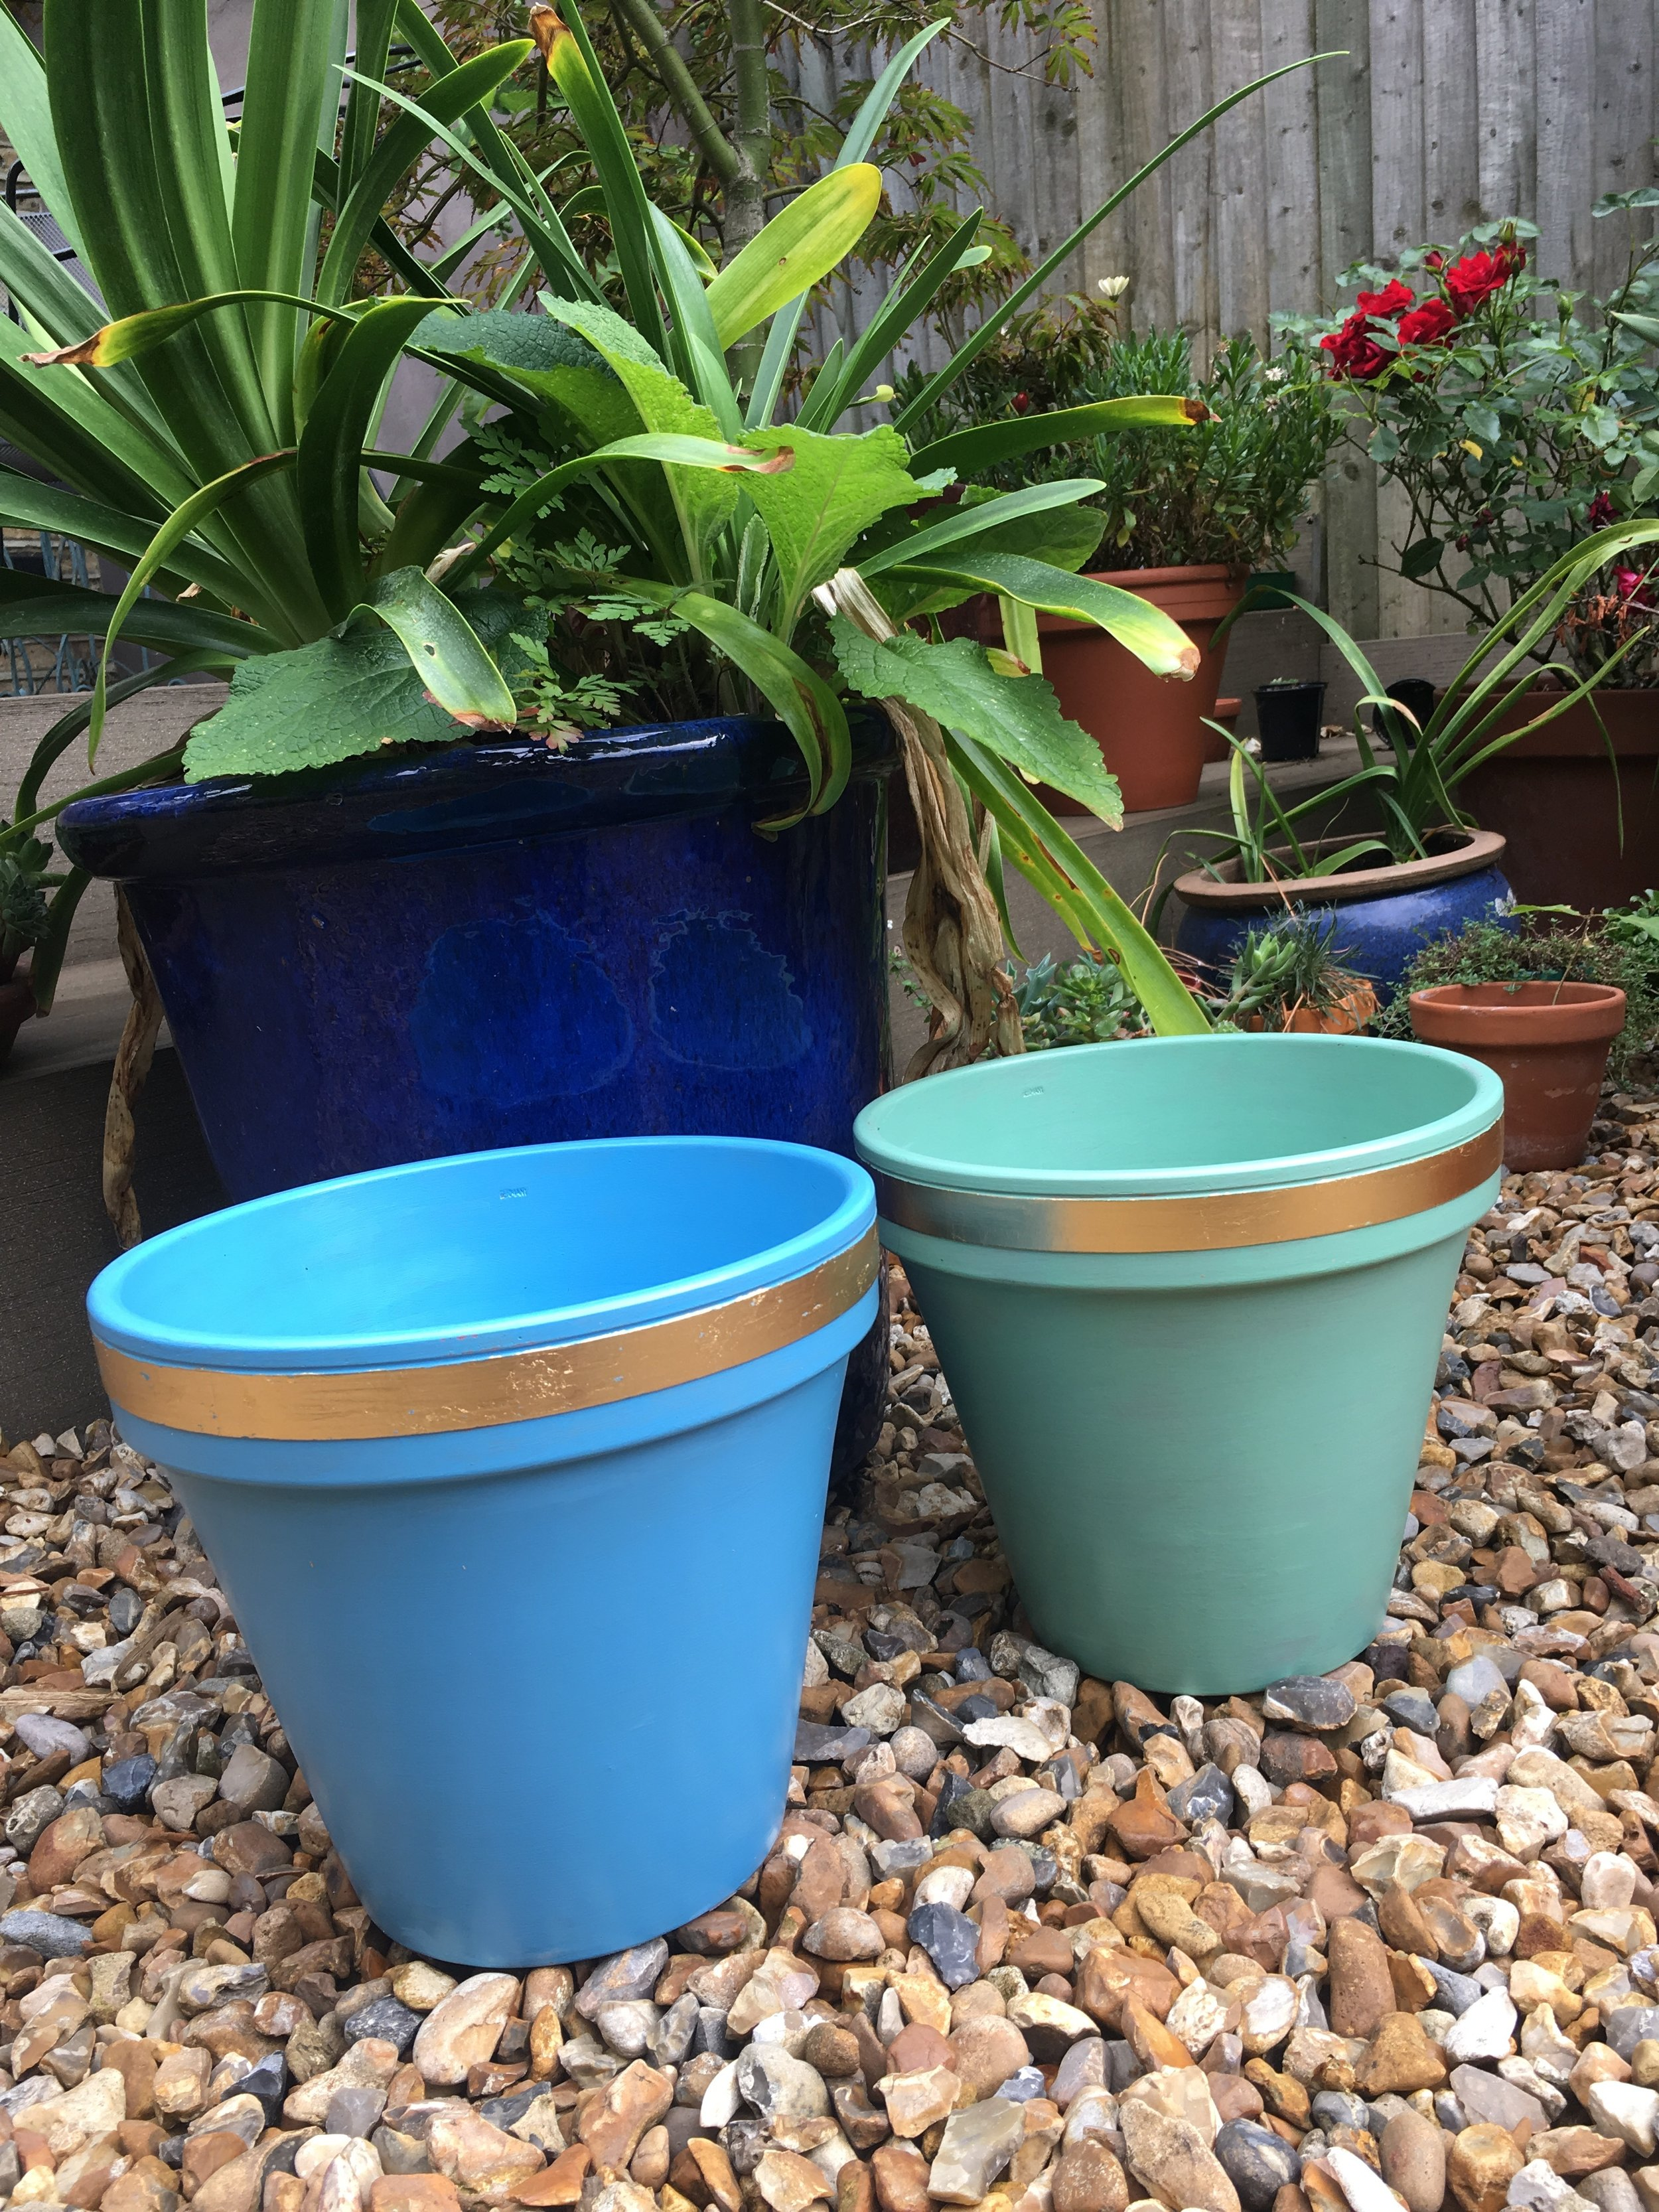 Extra Large Plant Pots - Simple, elegant and adding a pop of colour to any indoor or outdoor space. This making us think that maybe we should add these to our permament line!